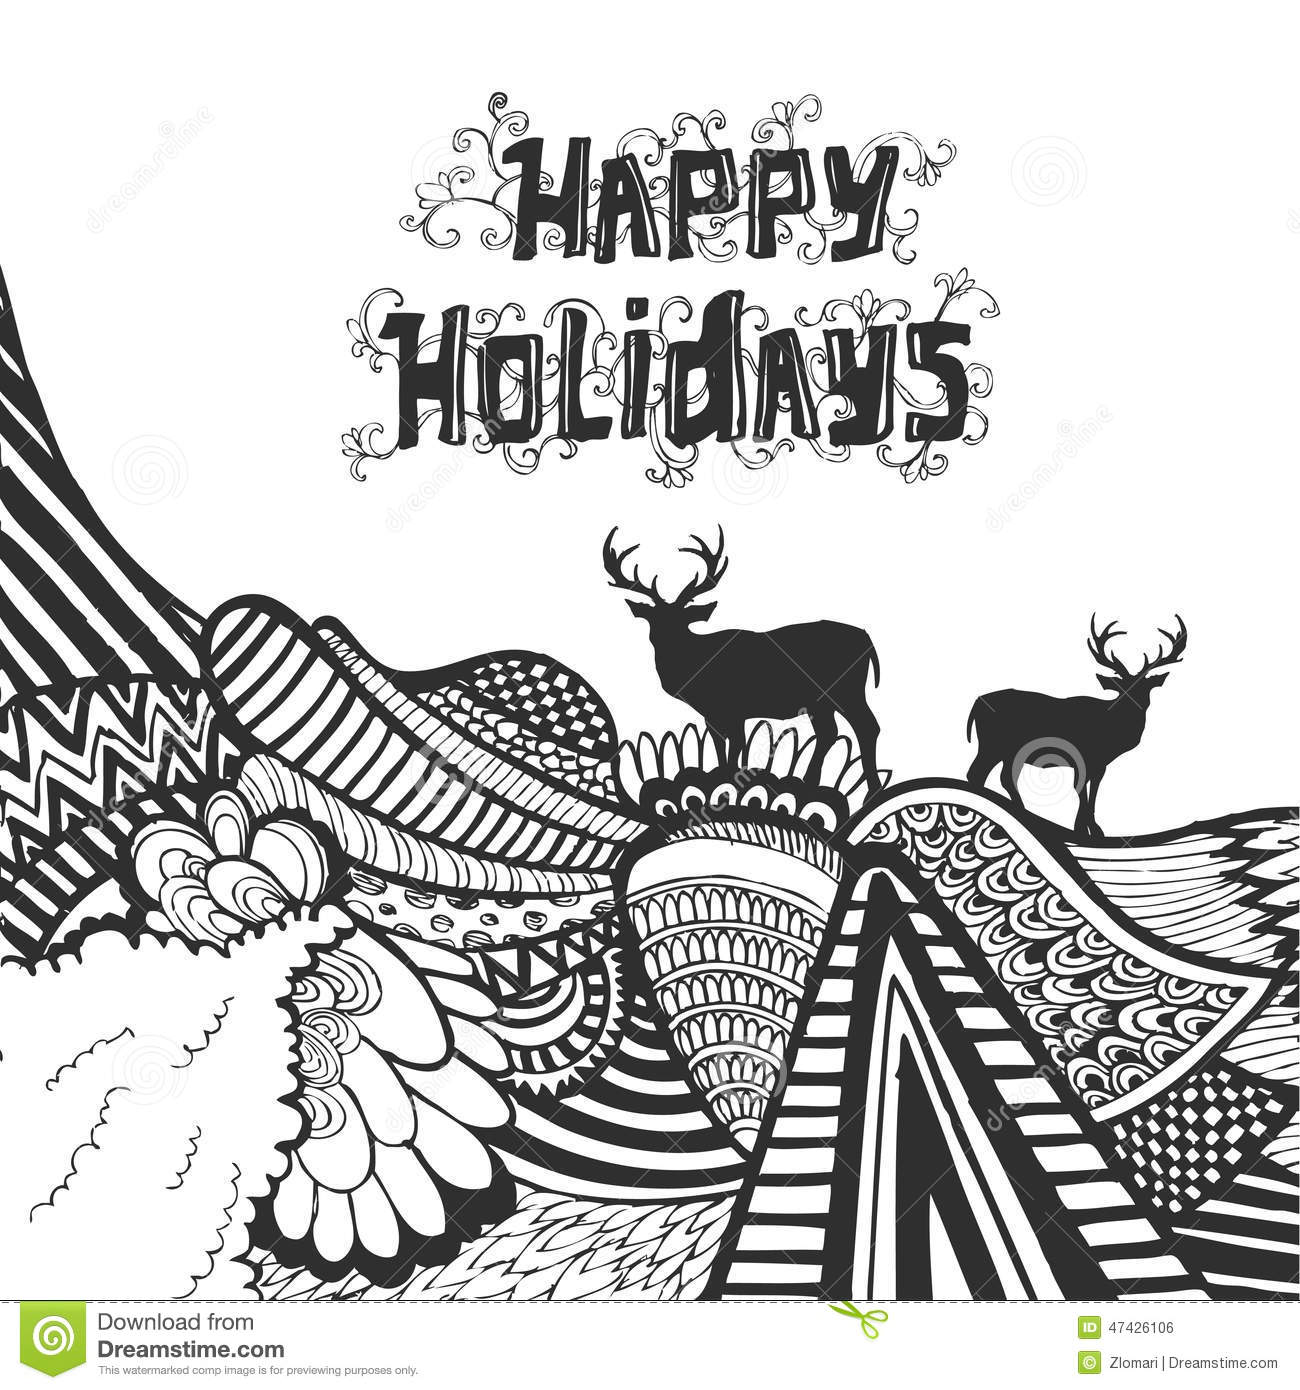 Christmas And Happy New Year Doodle Sketch With Typography Stock Vector - Image 47426106